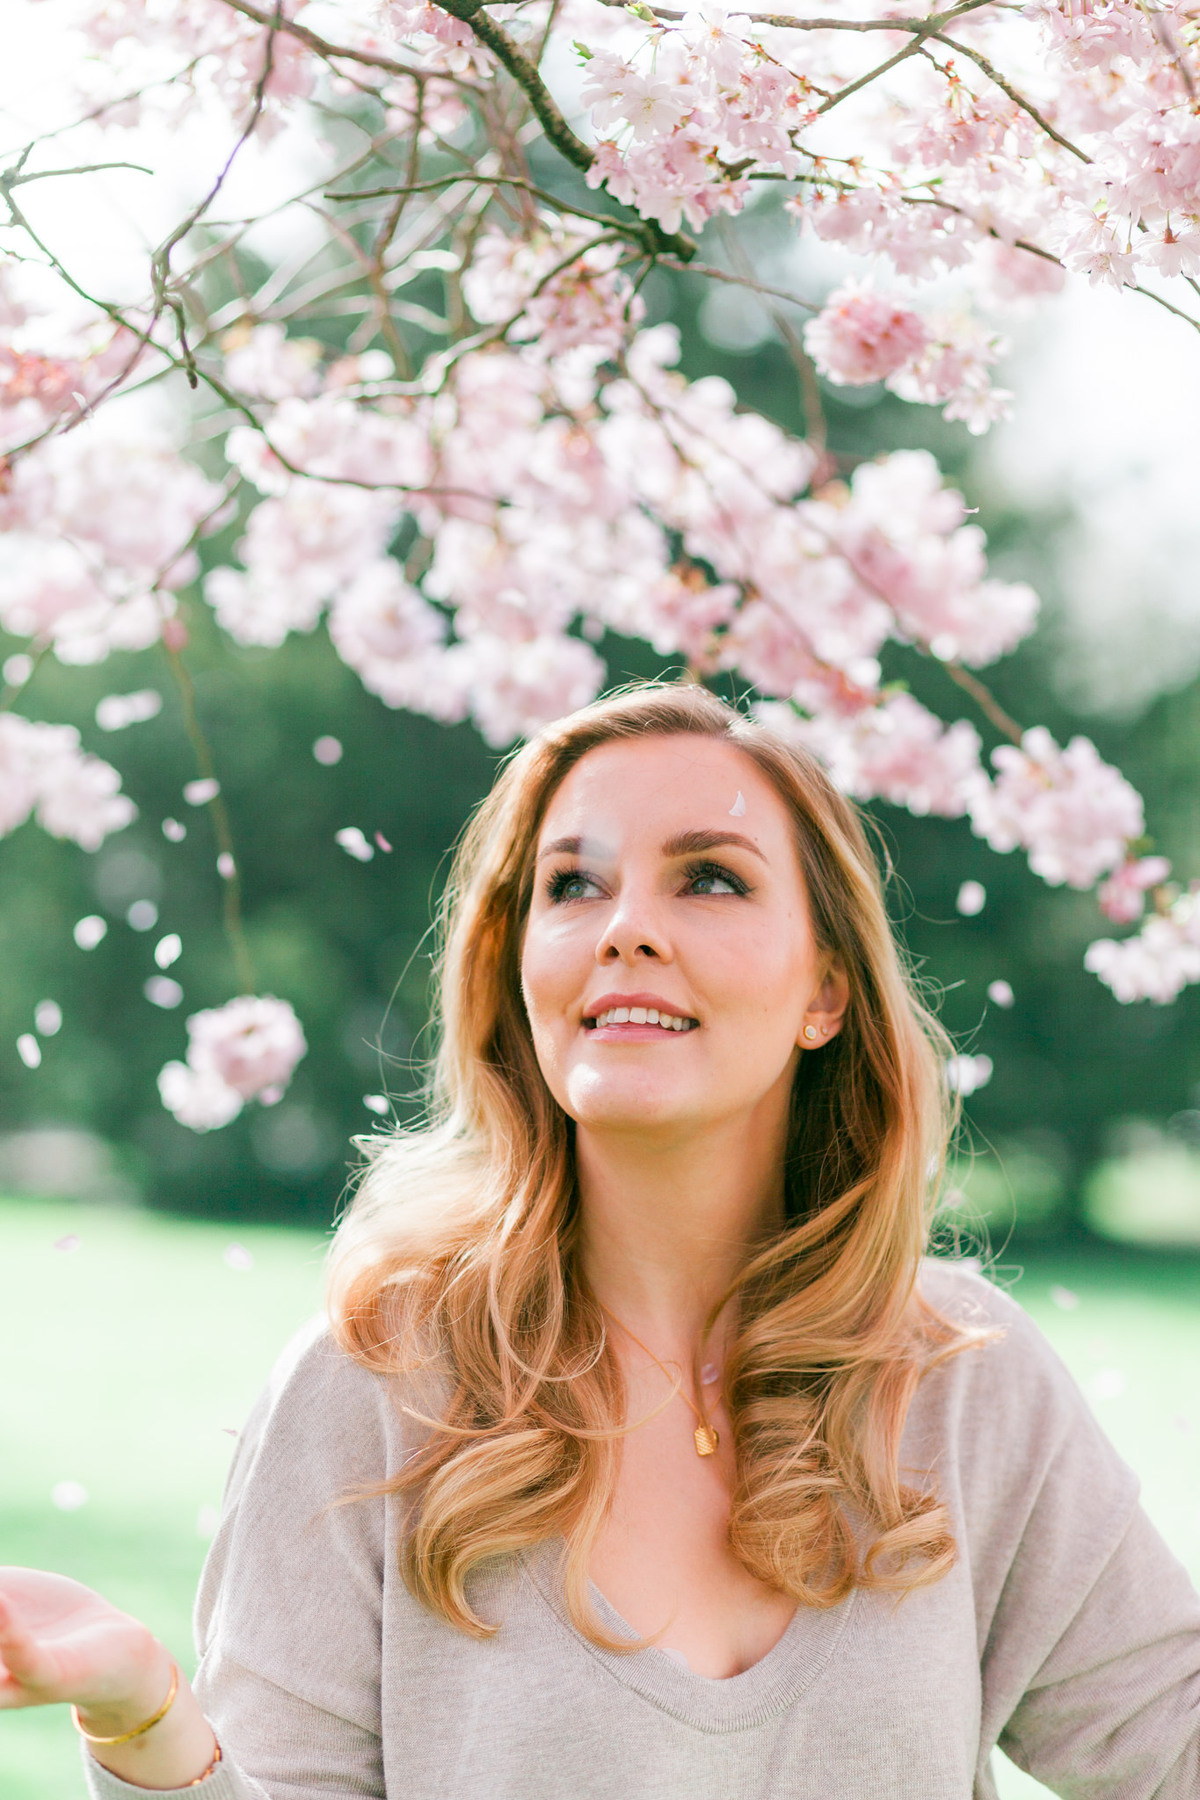 Branding headshot photo by Emma Jackson Photography of a woman in a neutral top standing amongst pink blossom watching the petals fall